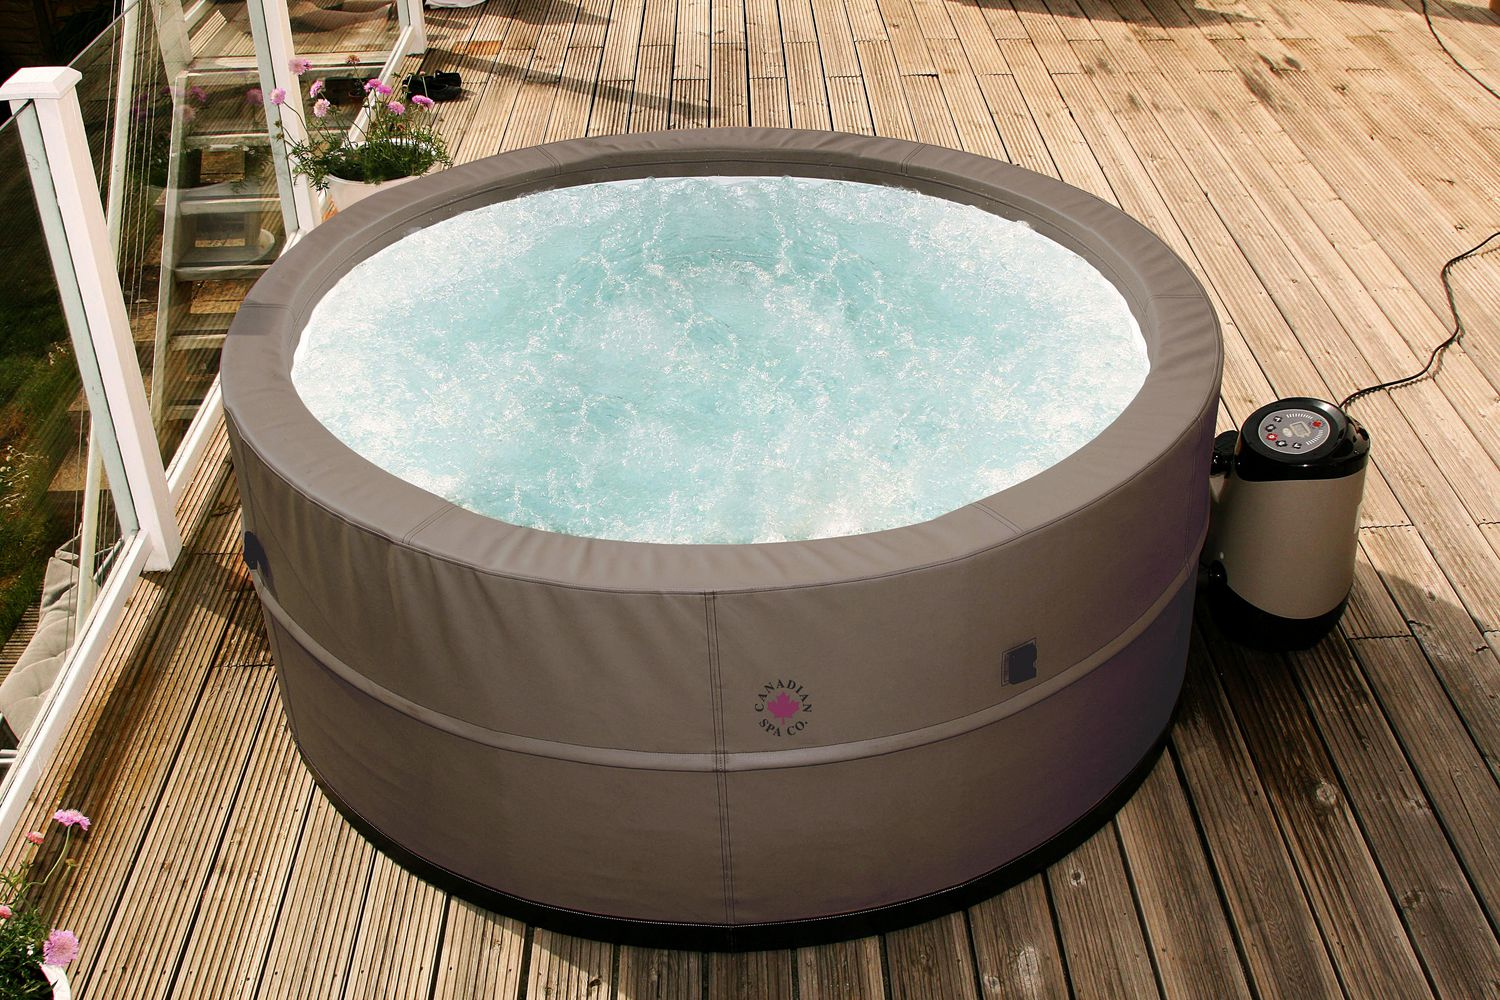 knapp knapps cabinet tub spa pools hot tubs interior kingston options soft s beautiful maax and